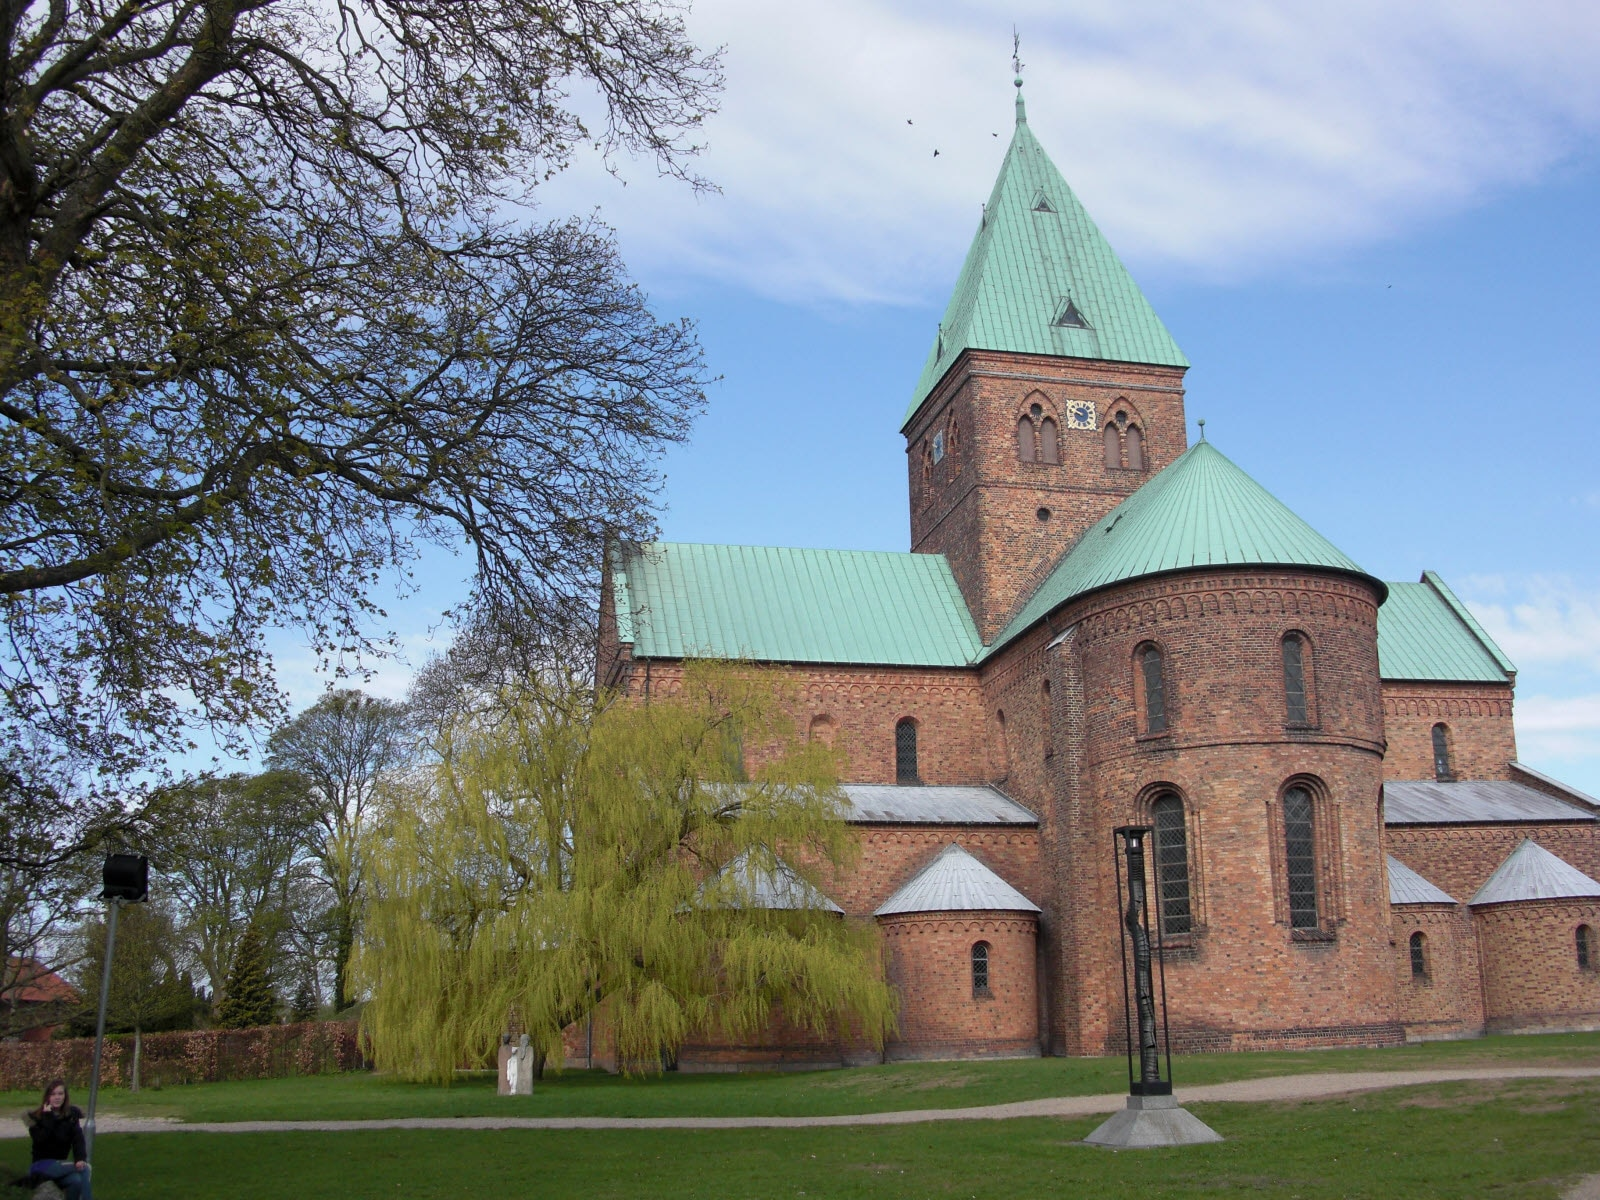 Sct. Bendt's Church in Ringsted